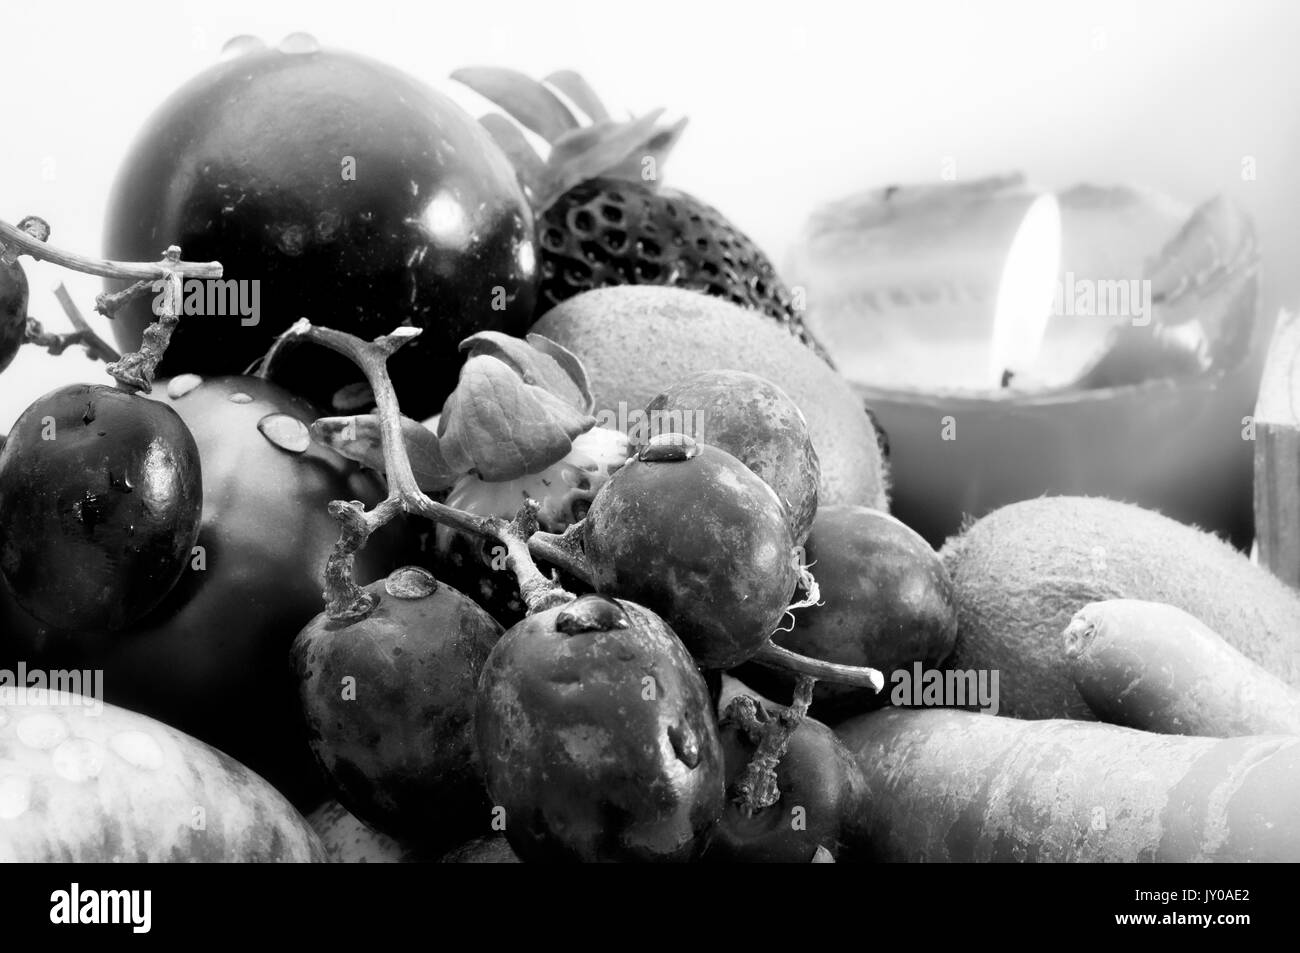 Fruit vegetables black and white stock photos images alamy